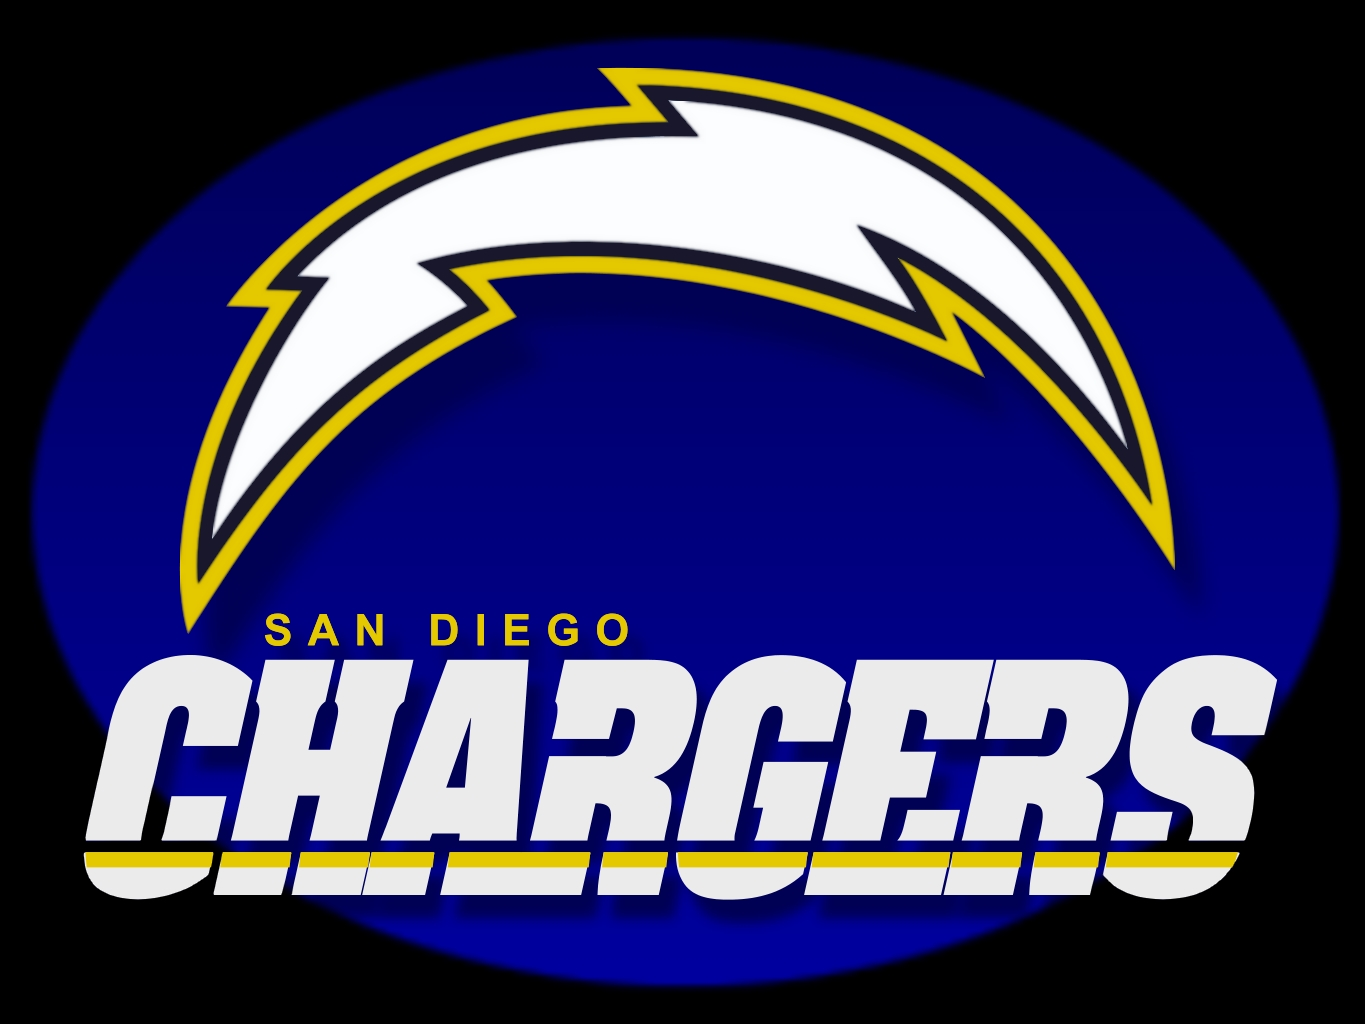 san diego chargers A real-time breakdown of the san diego chargers 2018 salary cap, including salaries, bonuses, reserve lists, dead cap, cap space and more.